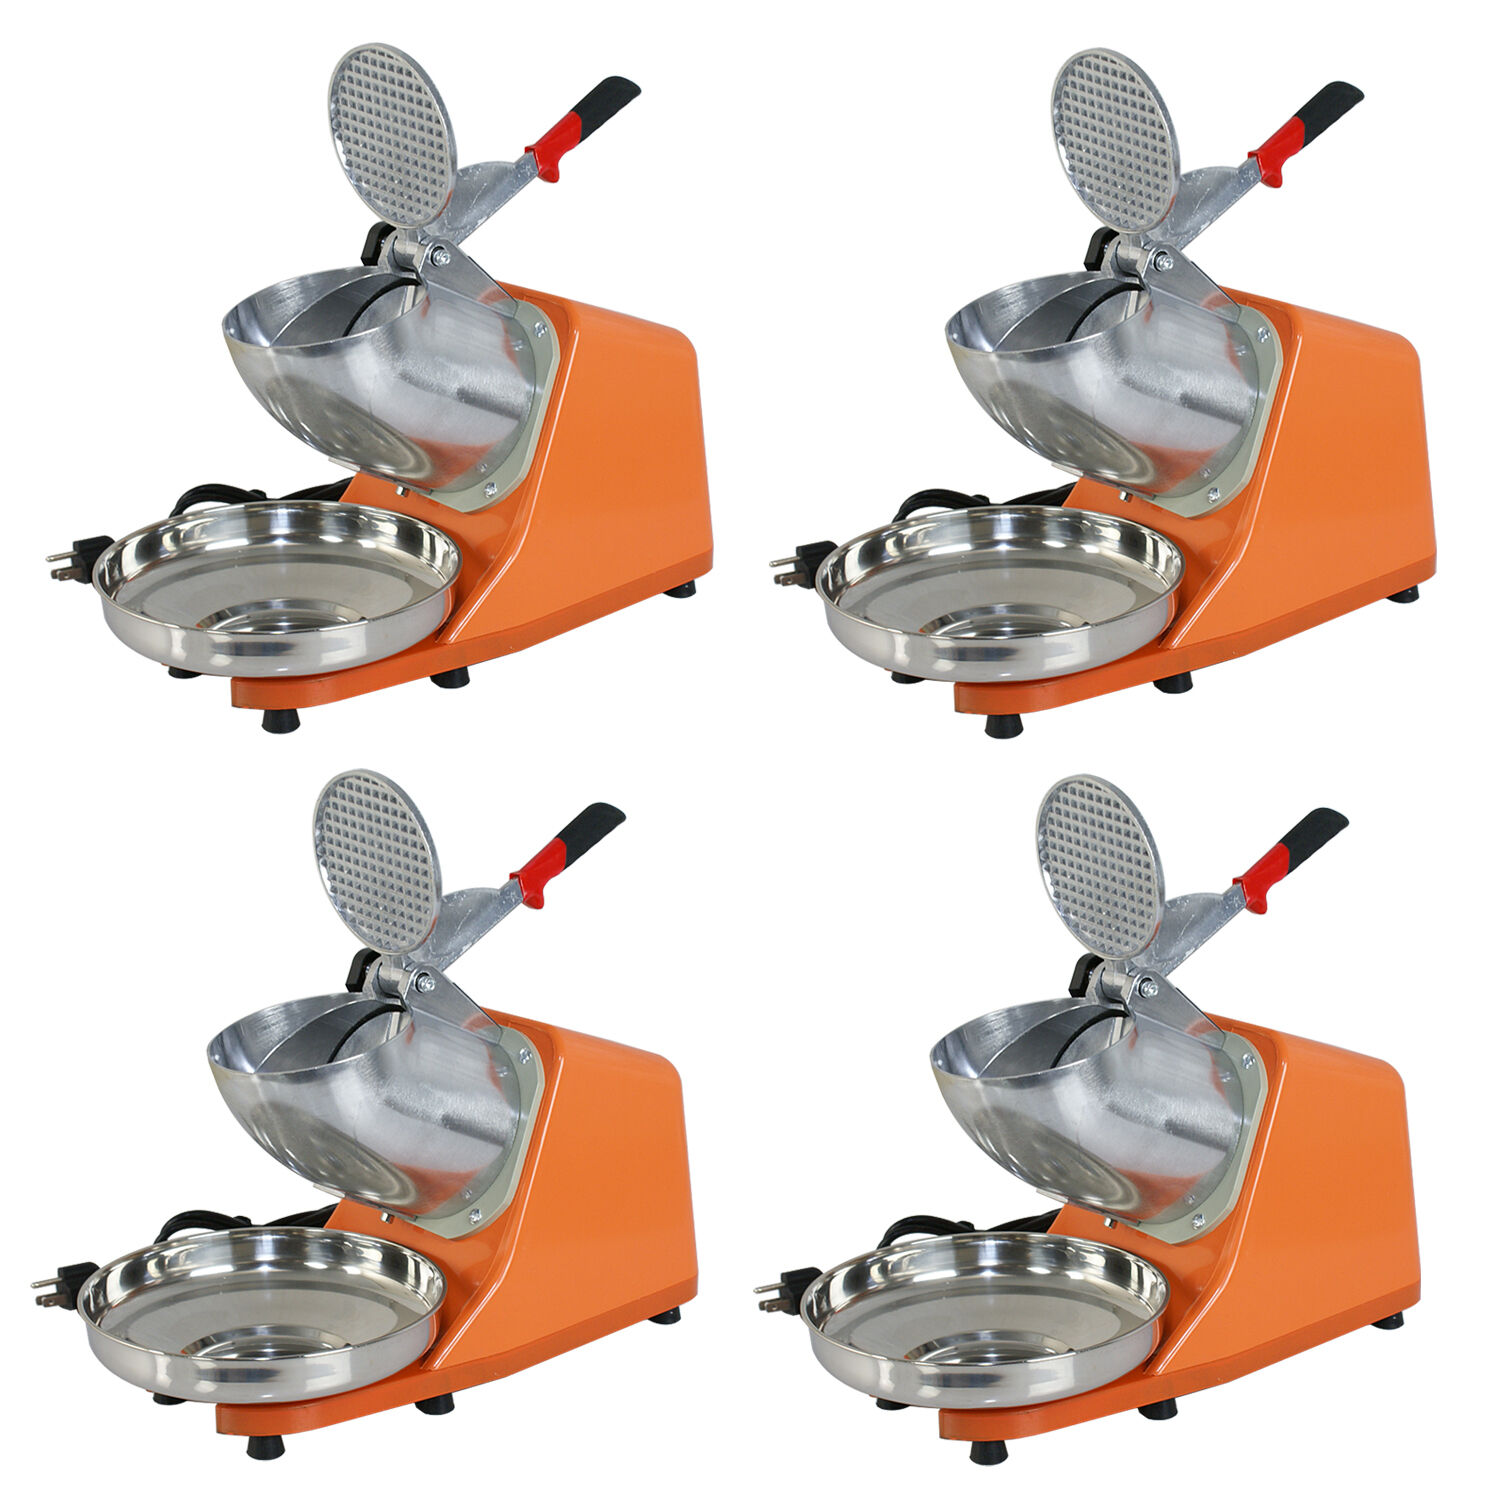 4X Commercial Ice Shaver 300W Electric Snow Cone Crusher Maker Machine 143lbs